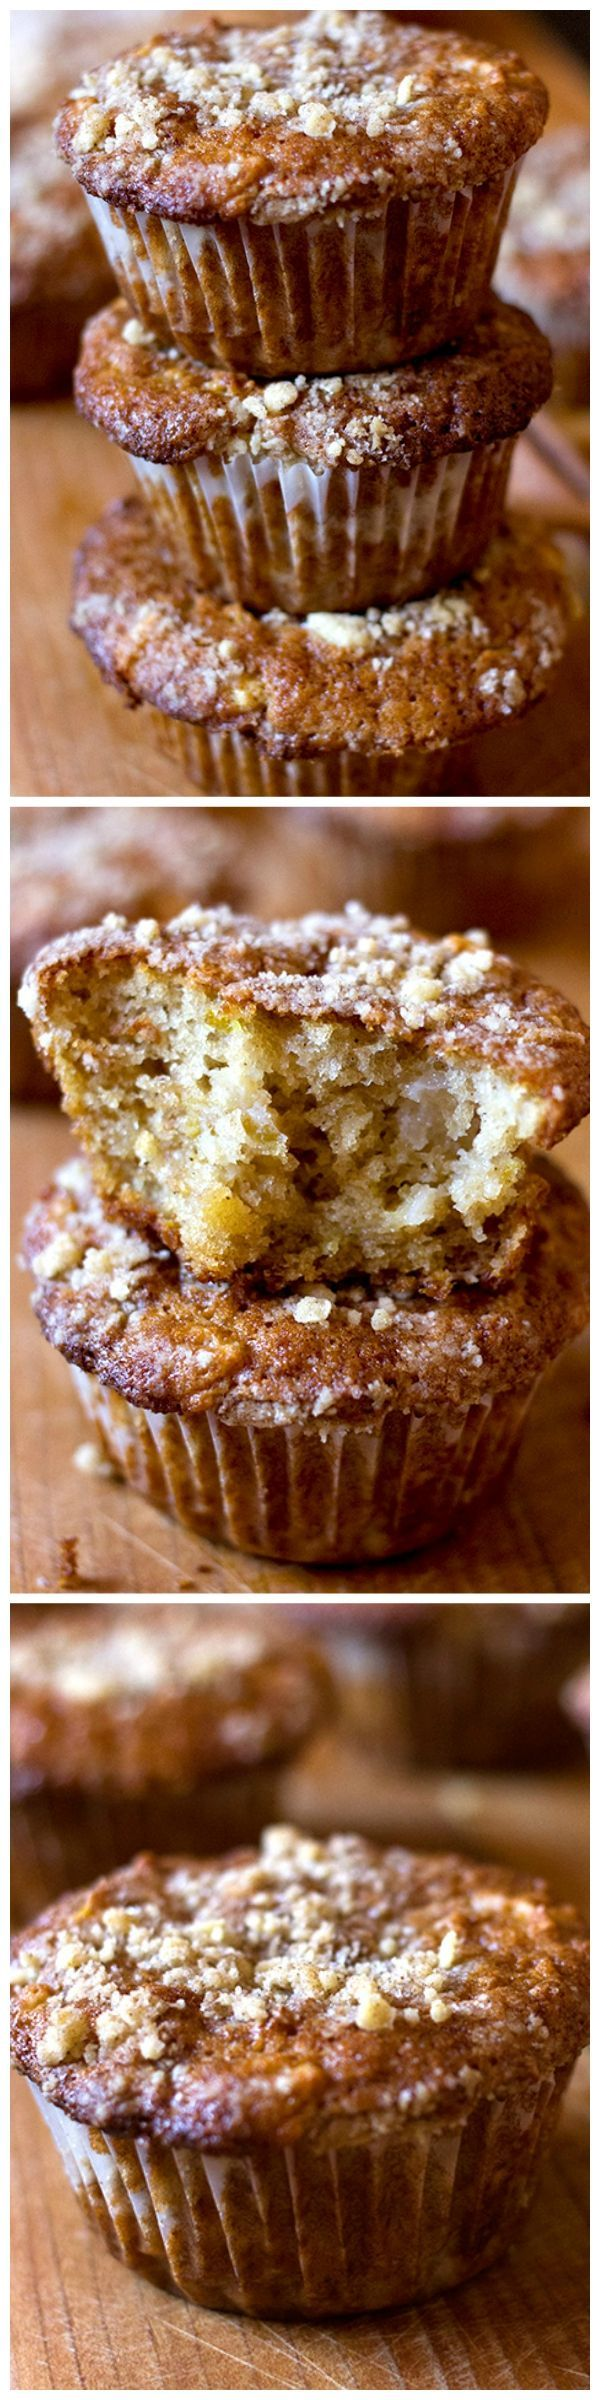 Apple Cinnamon Muffins - these are ridiculously easy and came out super fluffy and just plain delicious. I even got the fussy eater to eat half of one muffin and that, people, is huge!! #muffins #applemuffins